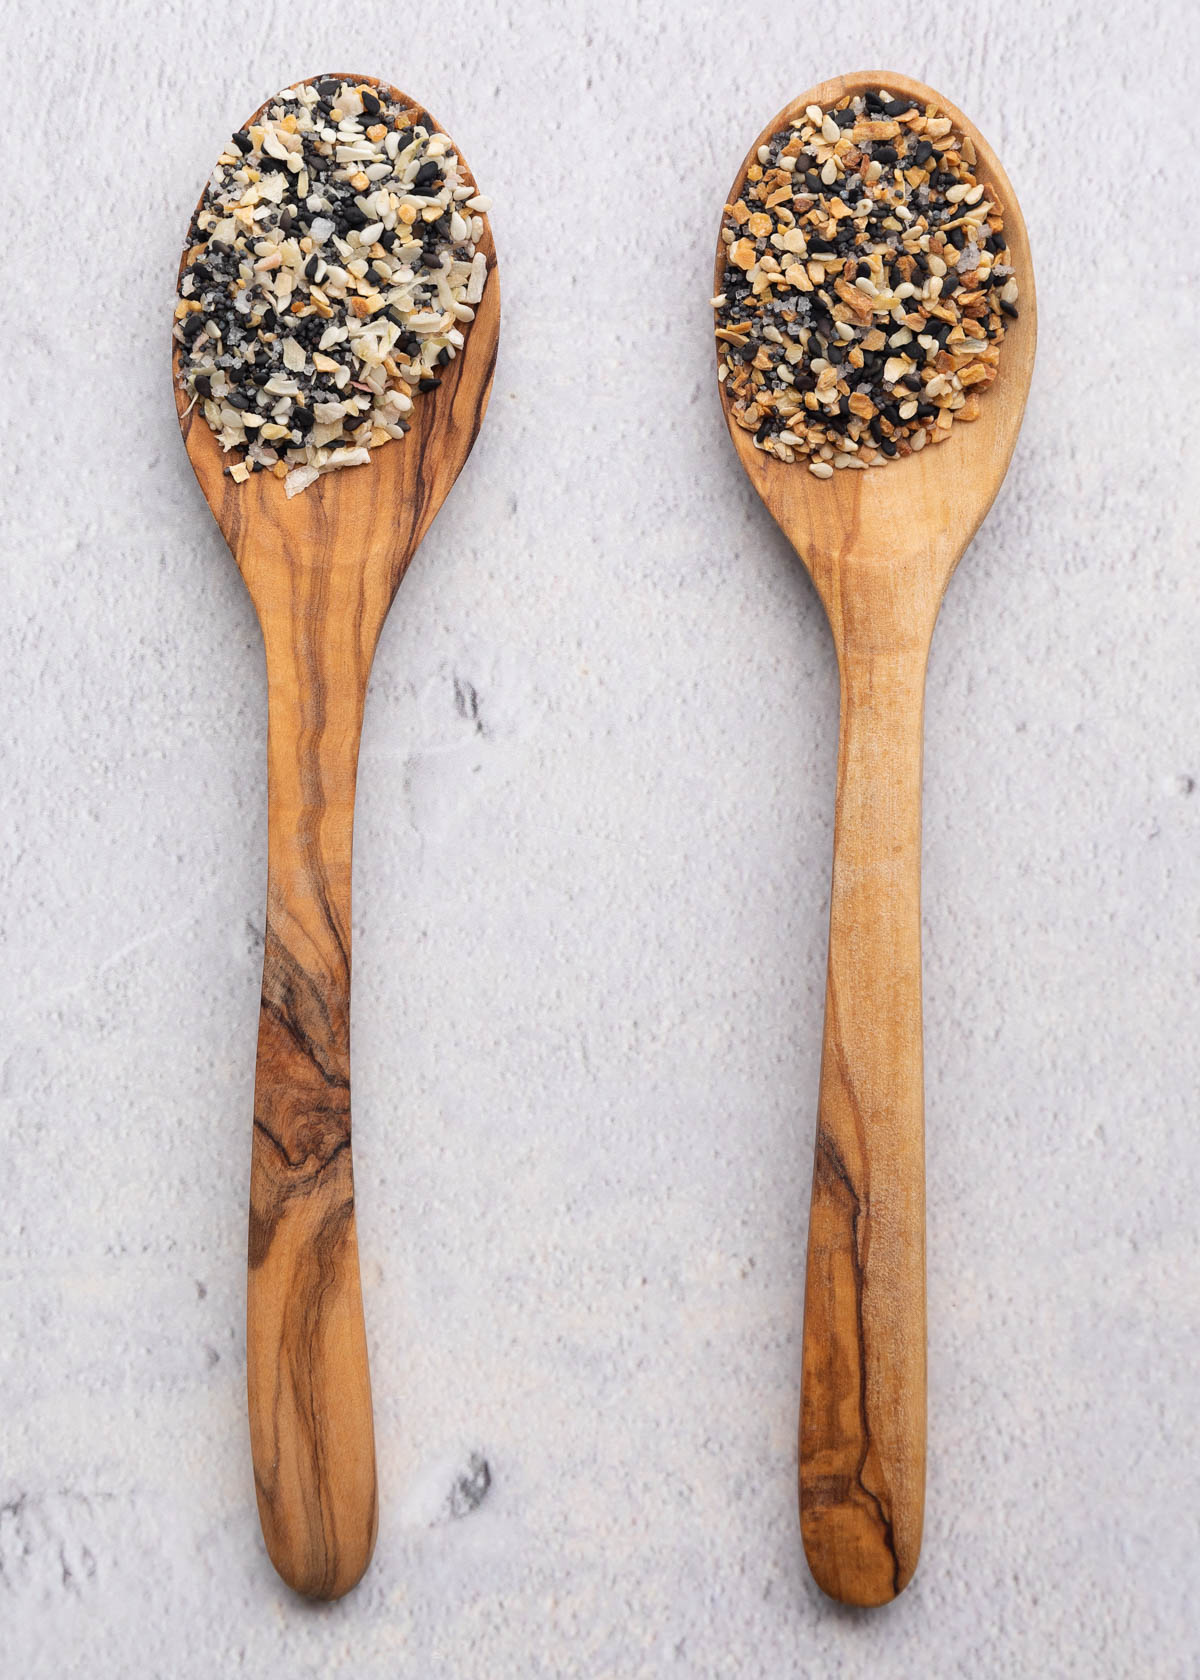 two olive wood spoons with untoasted and toasted everything seasoning